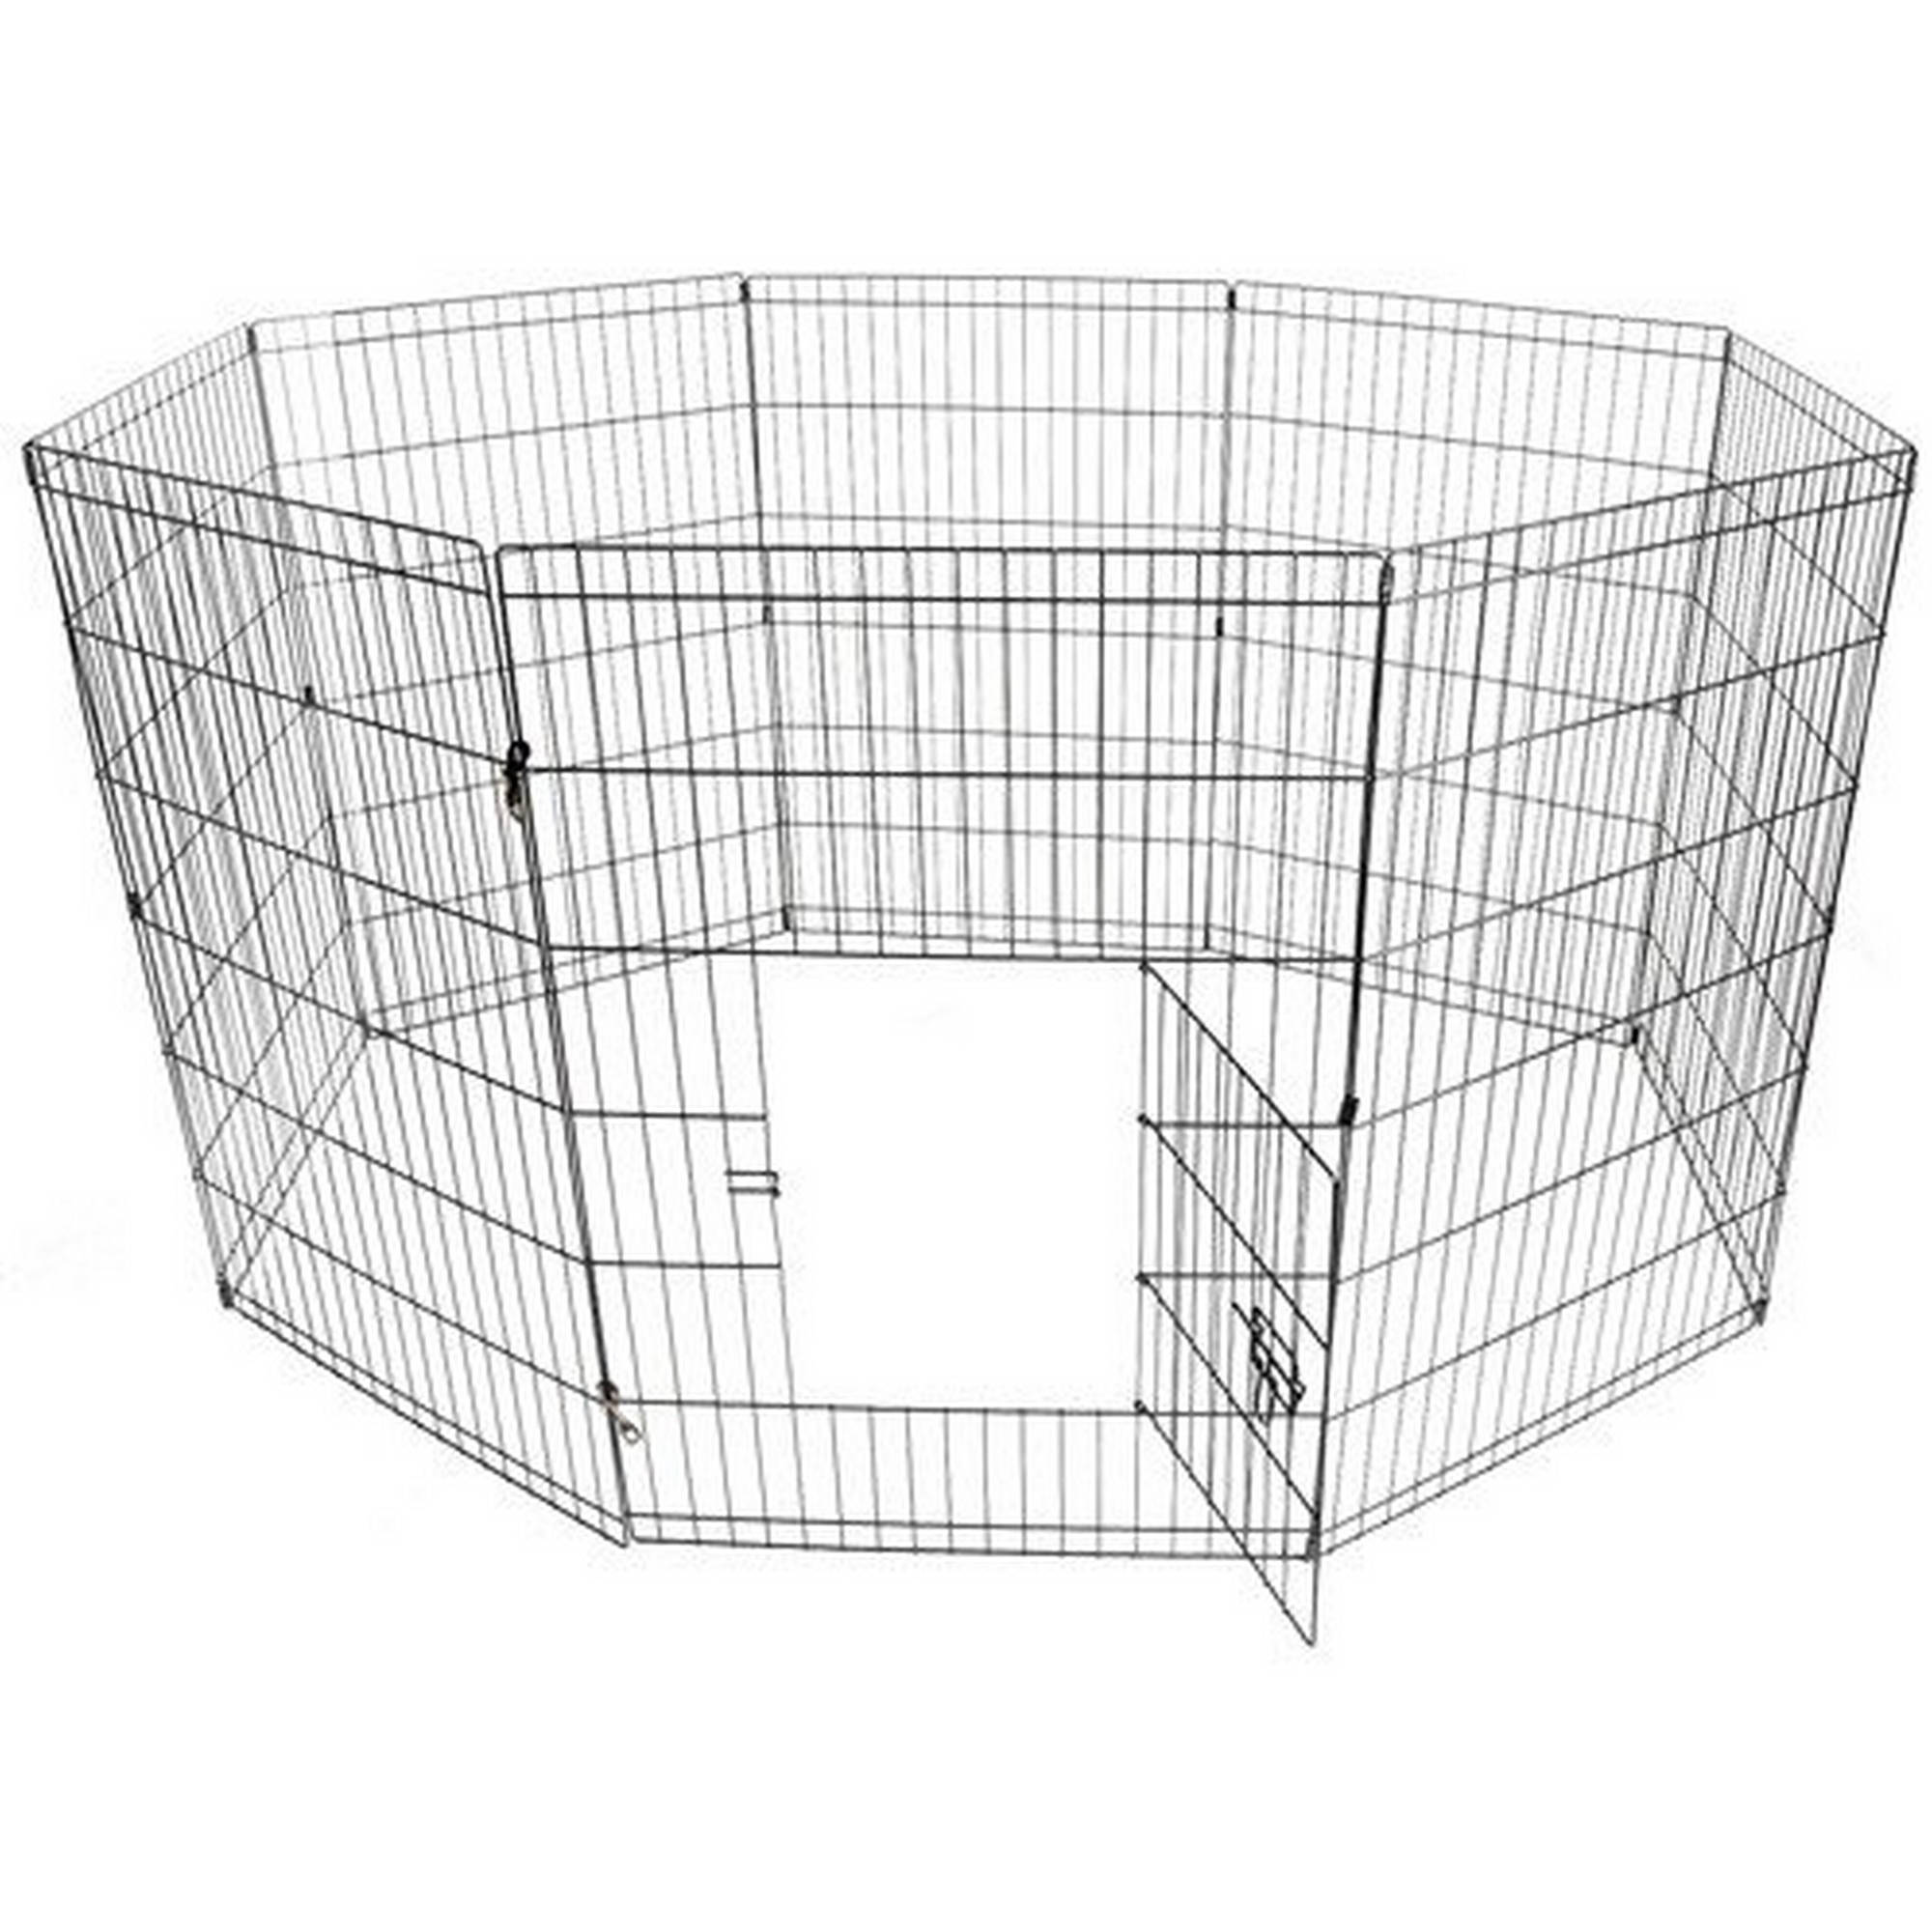 Aleko SDK-30B Dog Playpen Crate Fence